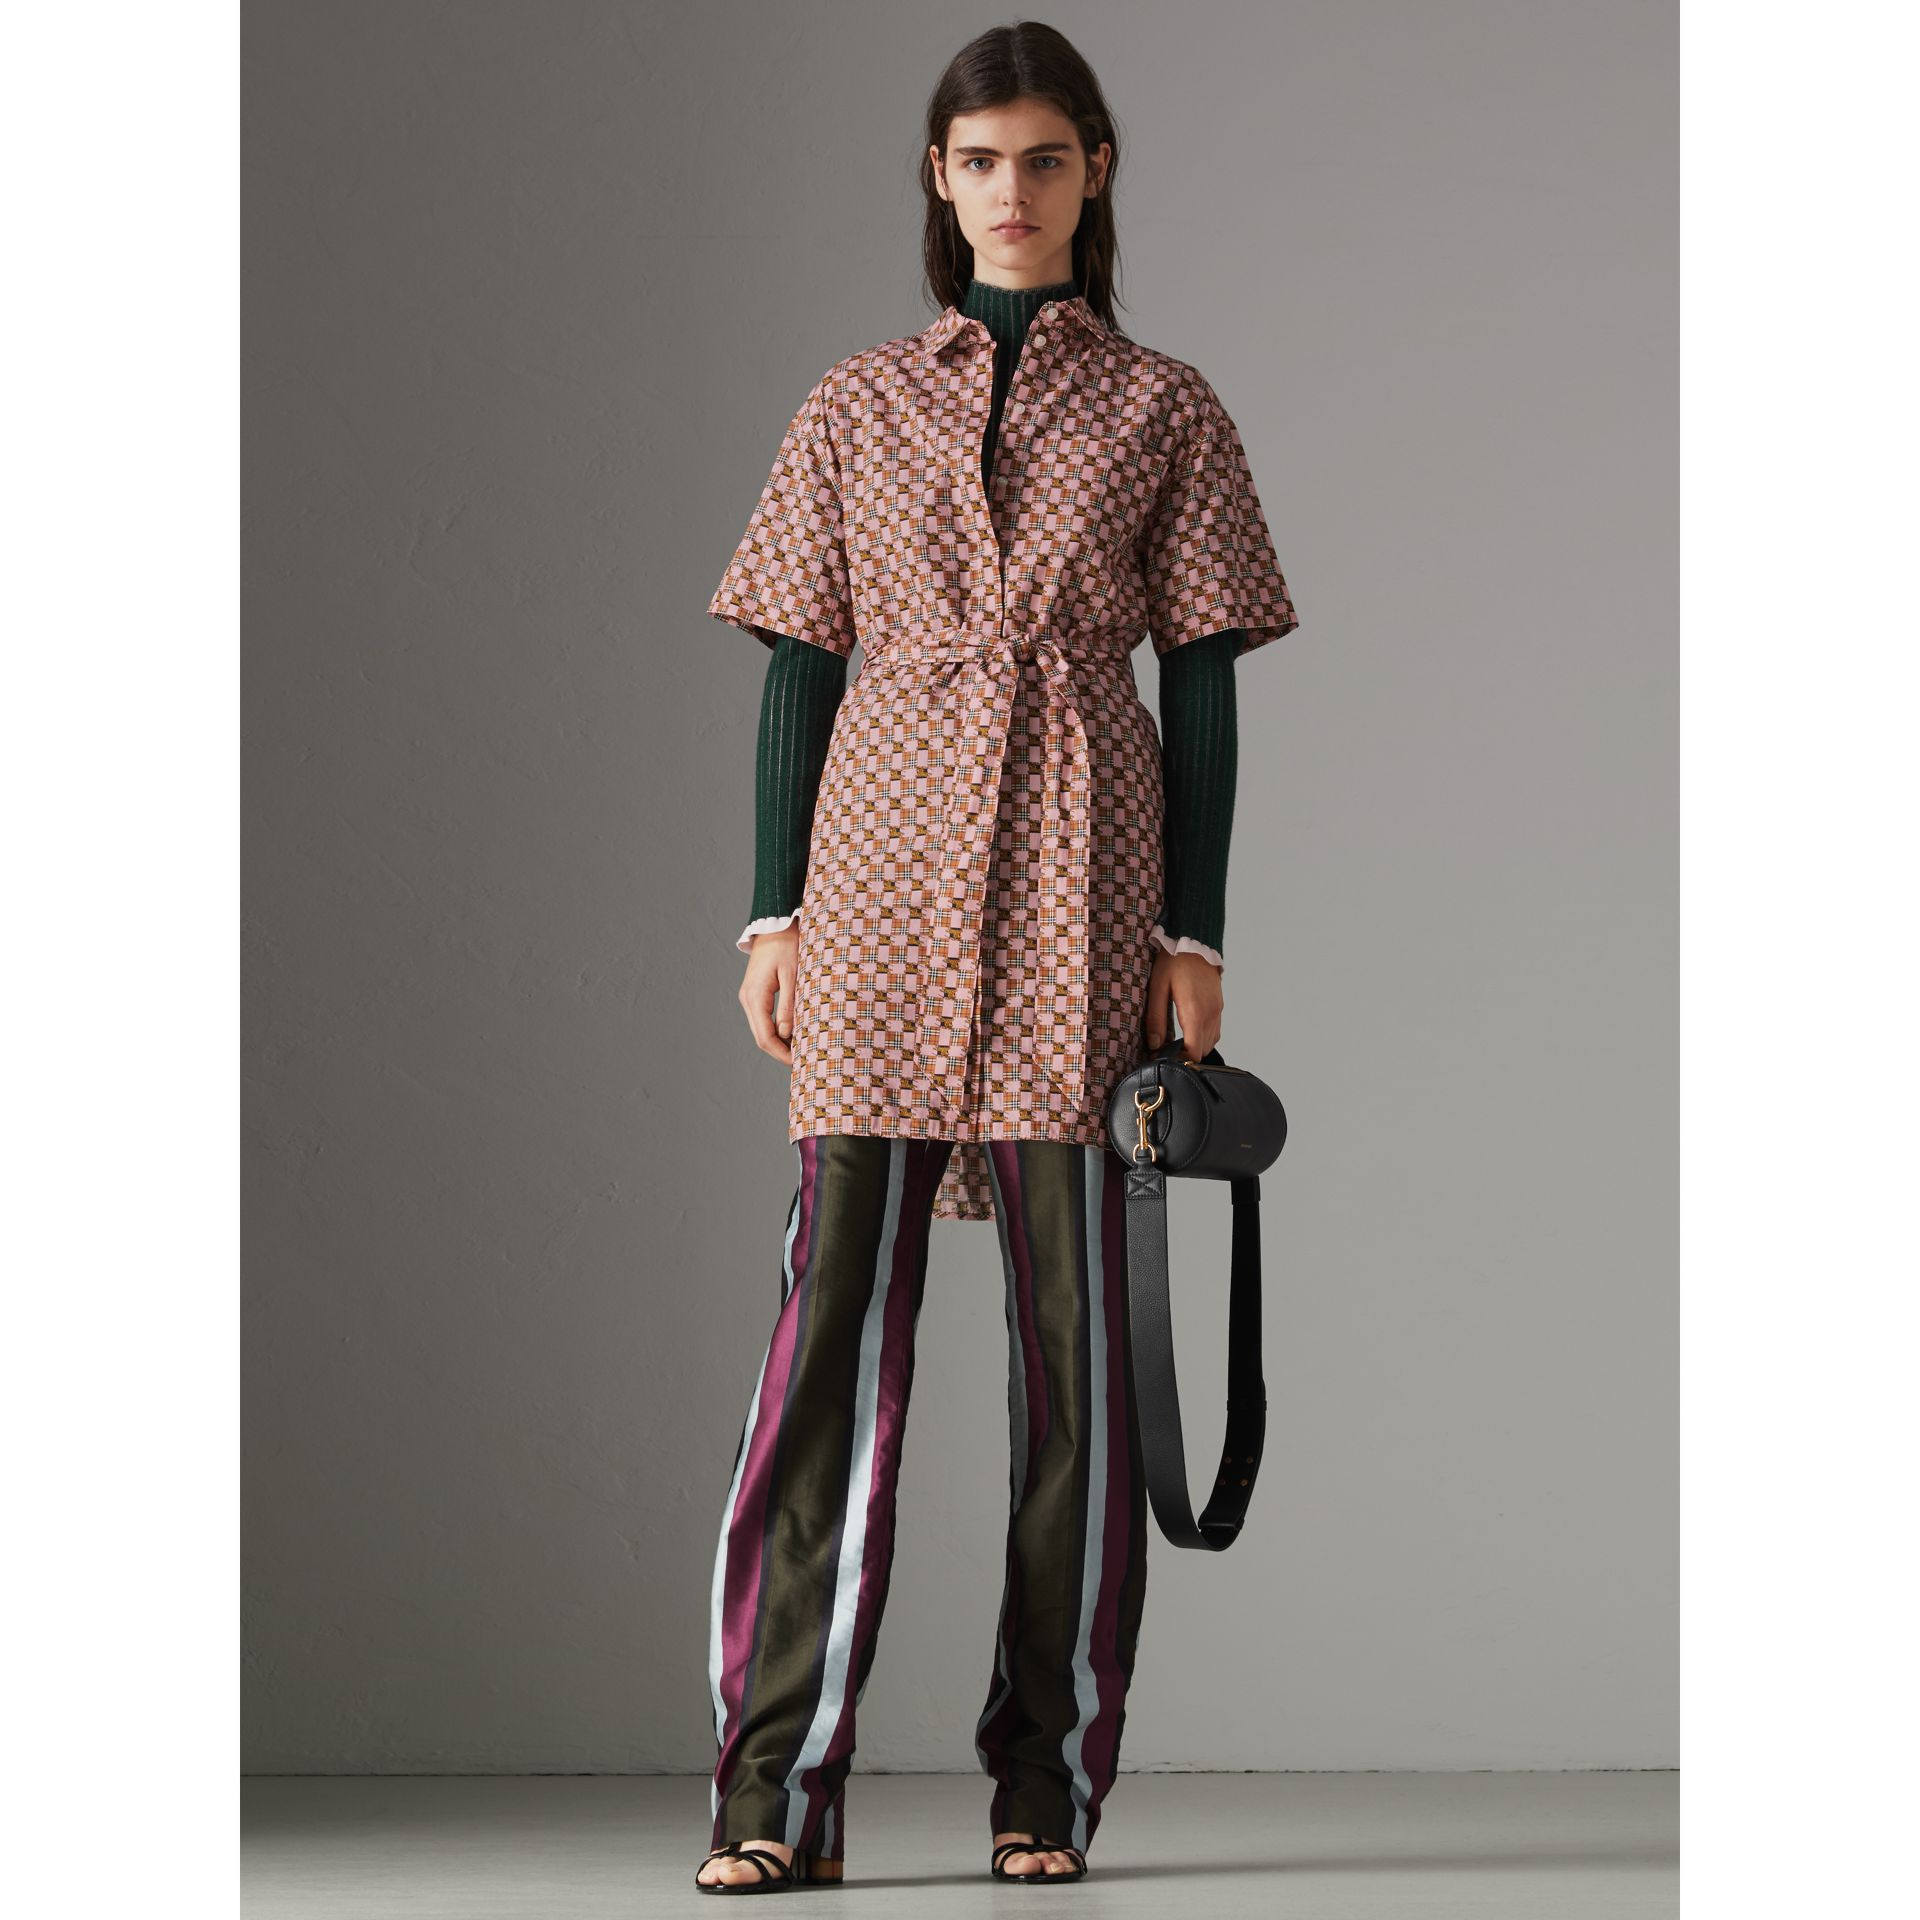 Tiled Archive Print Cotton Shirt Dress in Pink - Women | Burberry - gallery image 4